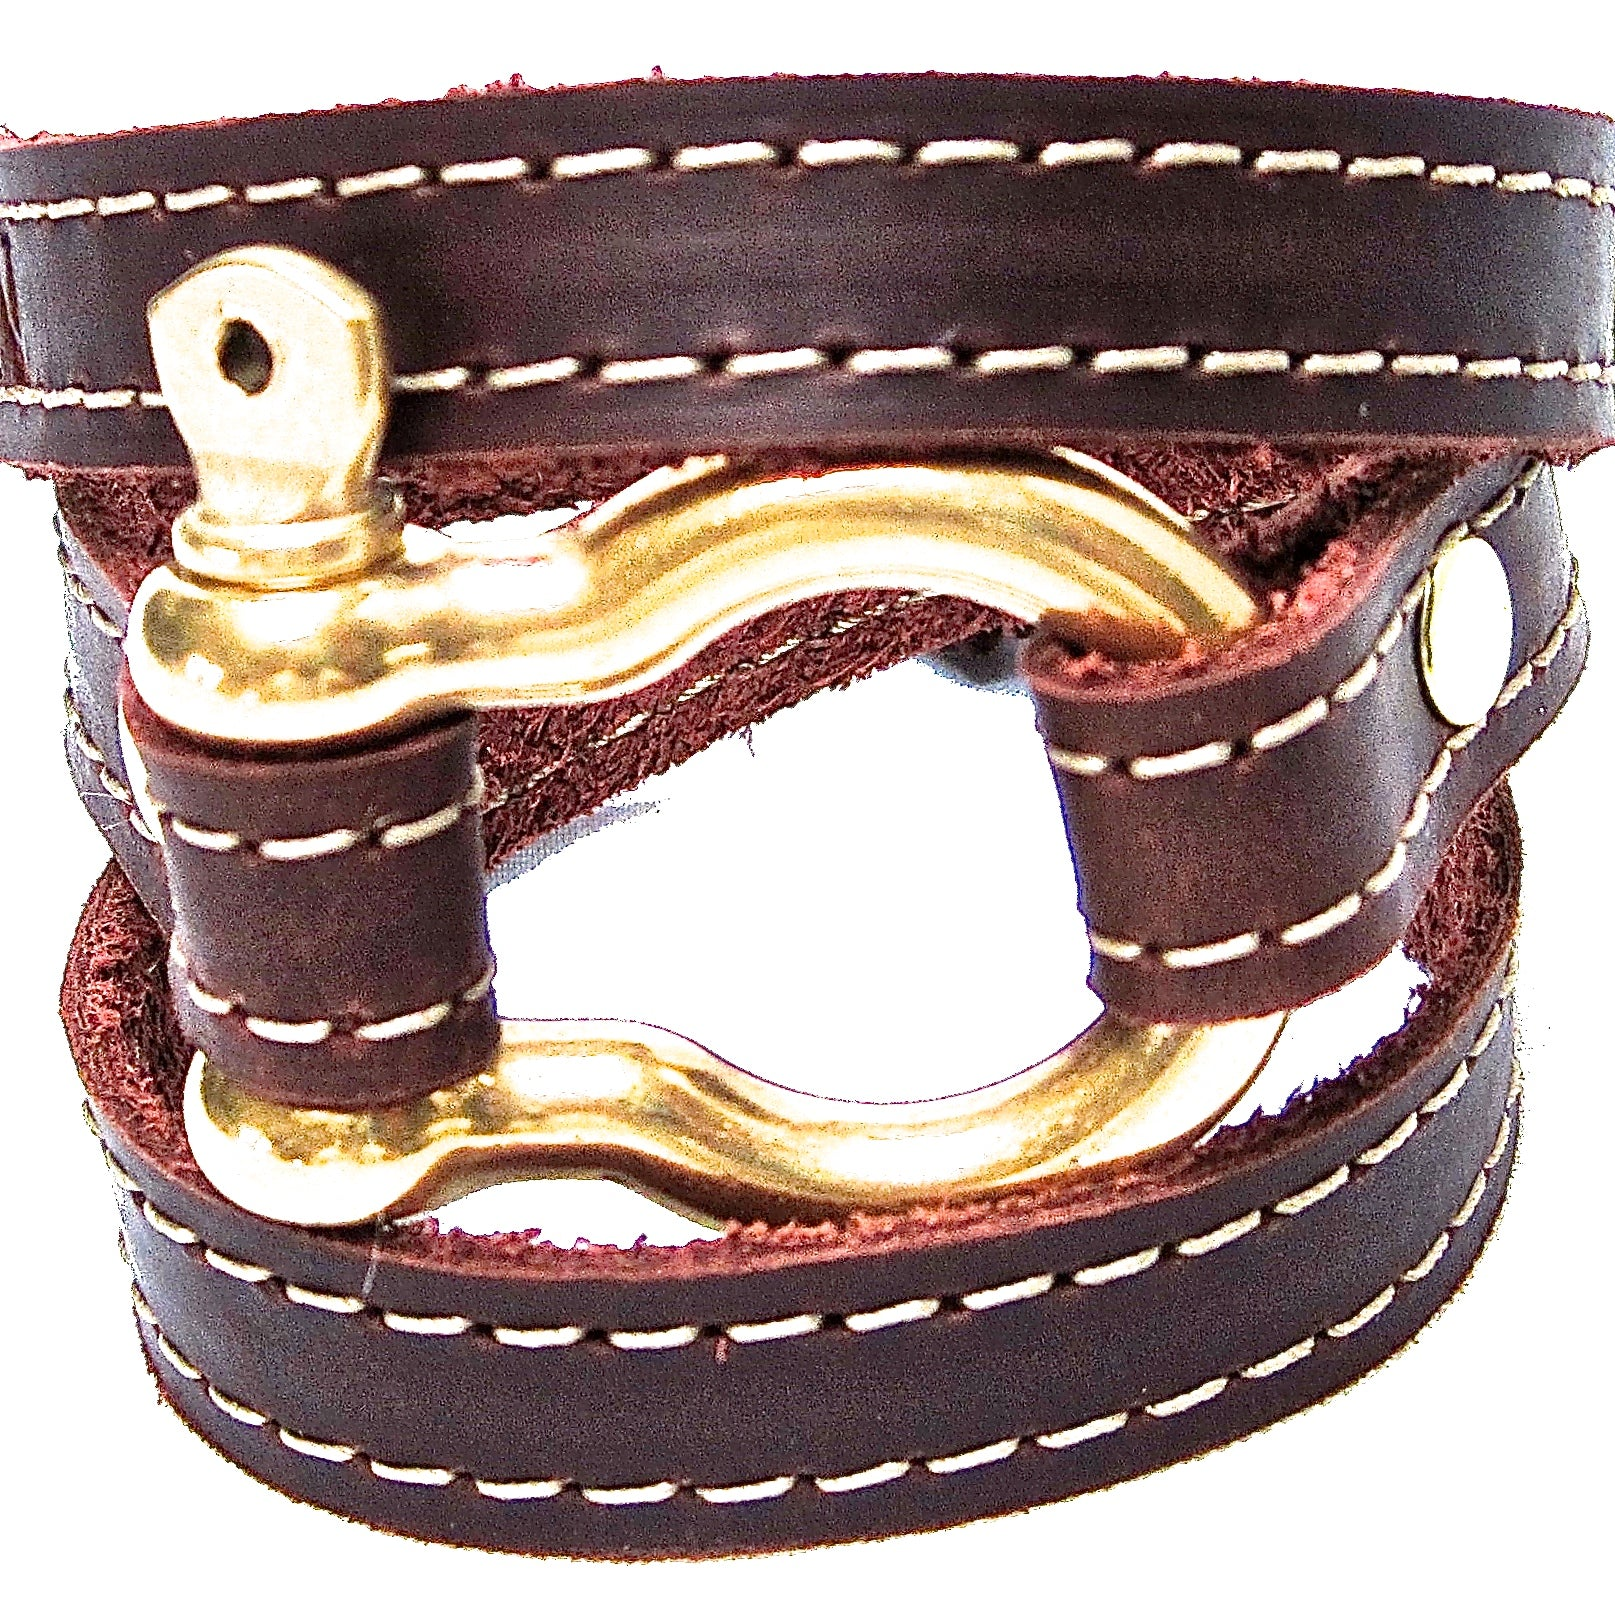 Nyet jewelry Signature Gold Shackle Wraparound Bracelet Brown BY NYET JEWELRY